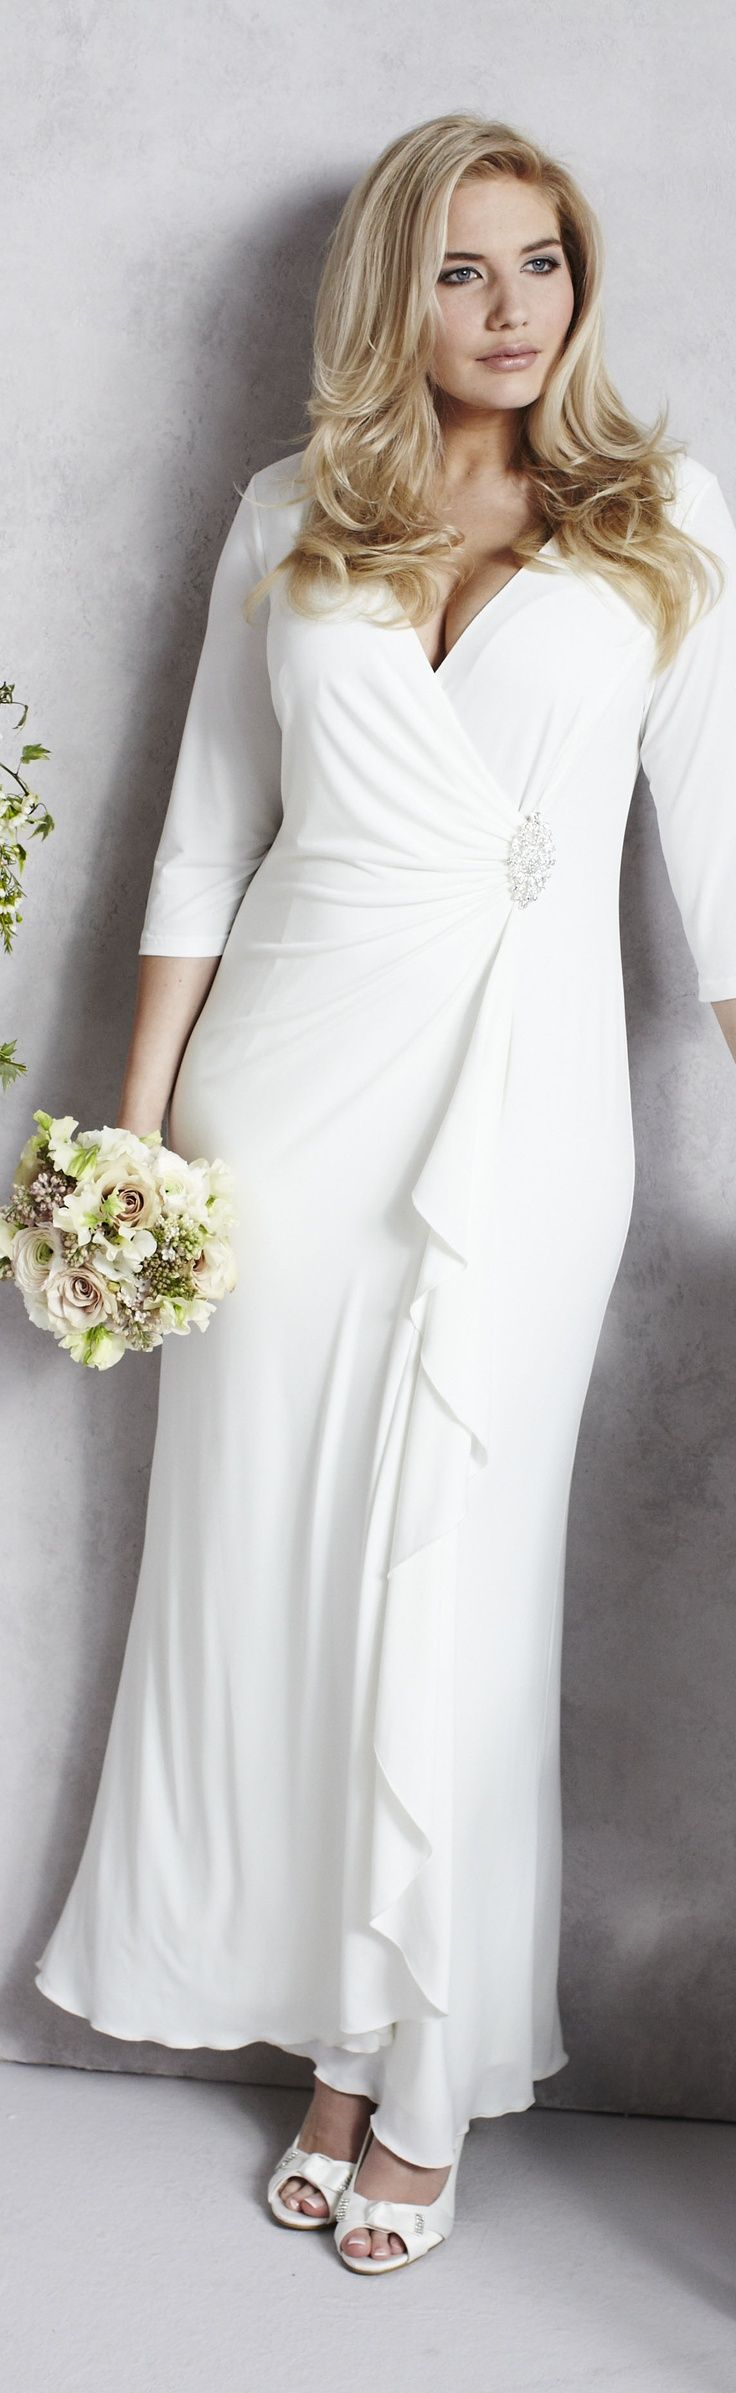 Wedding fashion ideas for the 50+ bride who wants to wear white on her wedding day http://beauty-for-brides.com/2015/04/20/wedding-fashion-ideas-for-the-50-bride/?utm_content=bufferf416f&utm_medium=social&utm_source=pinterest.com&utm_campaign=buffer